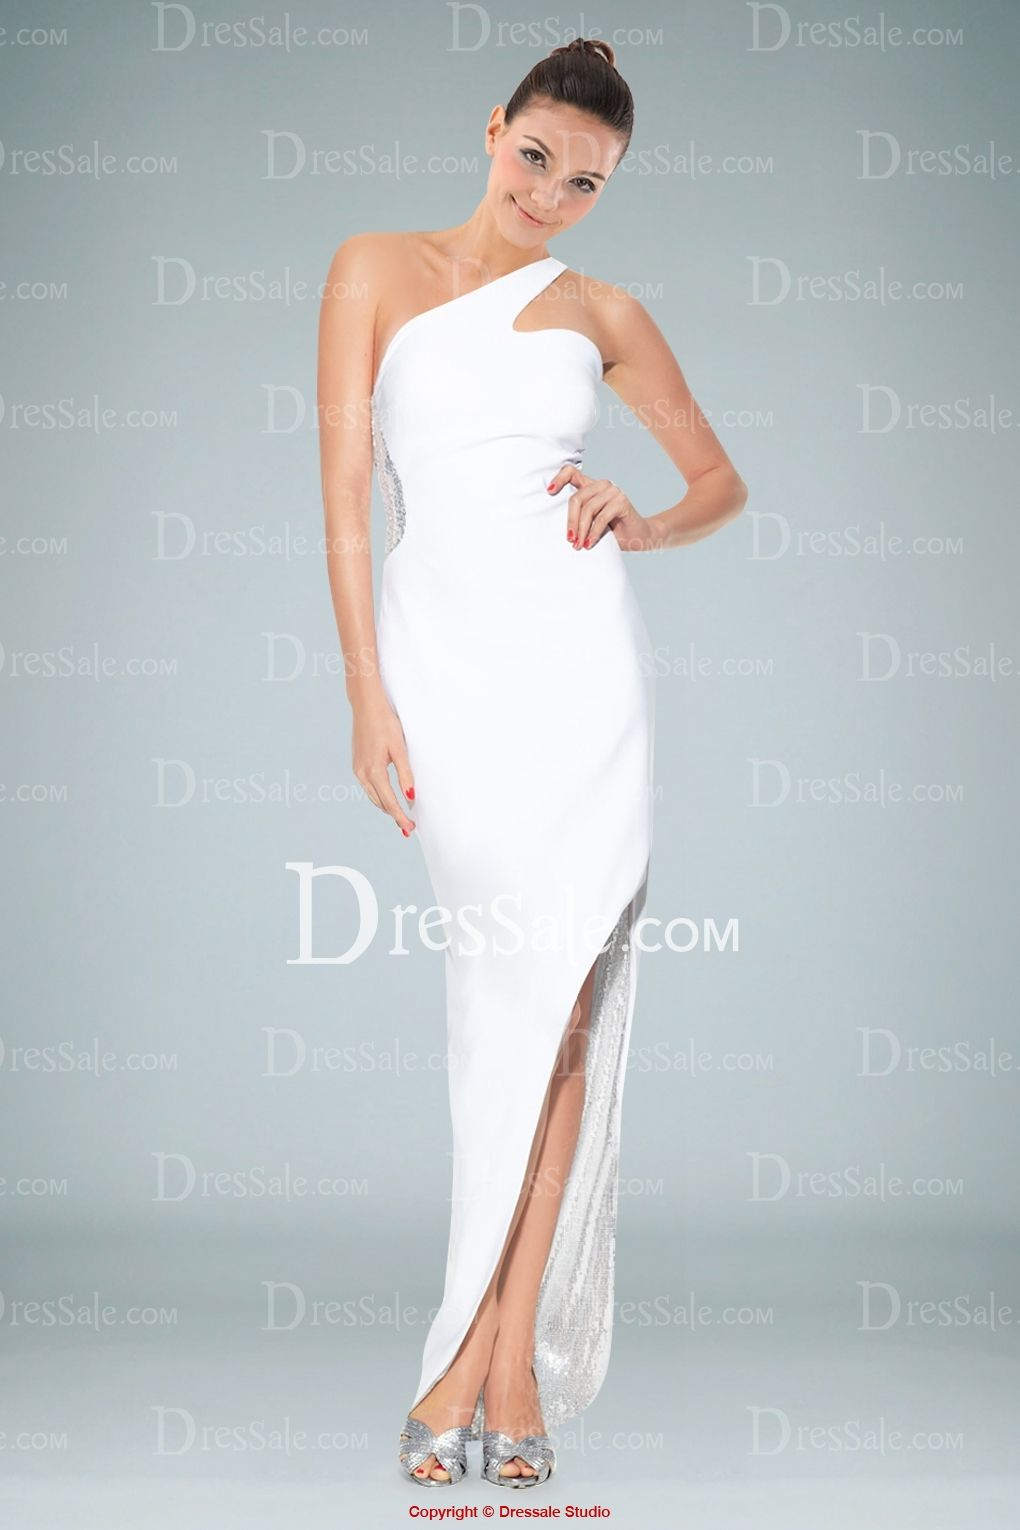 Romantic White One Shoulder Evening Dress with Sequin Bodice Back http://www.dressale.com/romantic-white-one-shoulder-evening-dress-with-sequin-bodice-back-p-68458.html